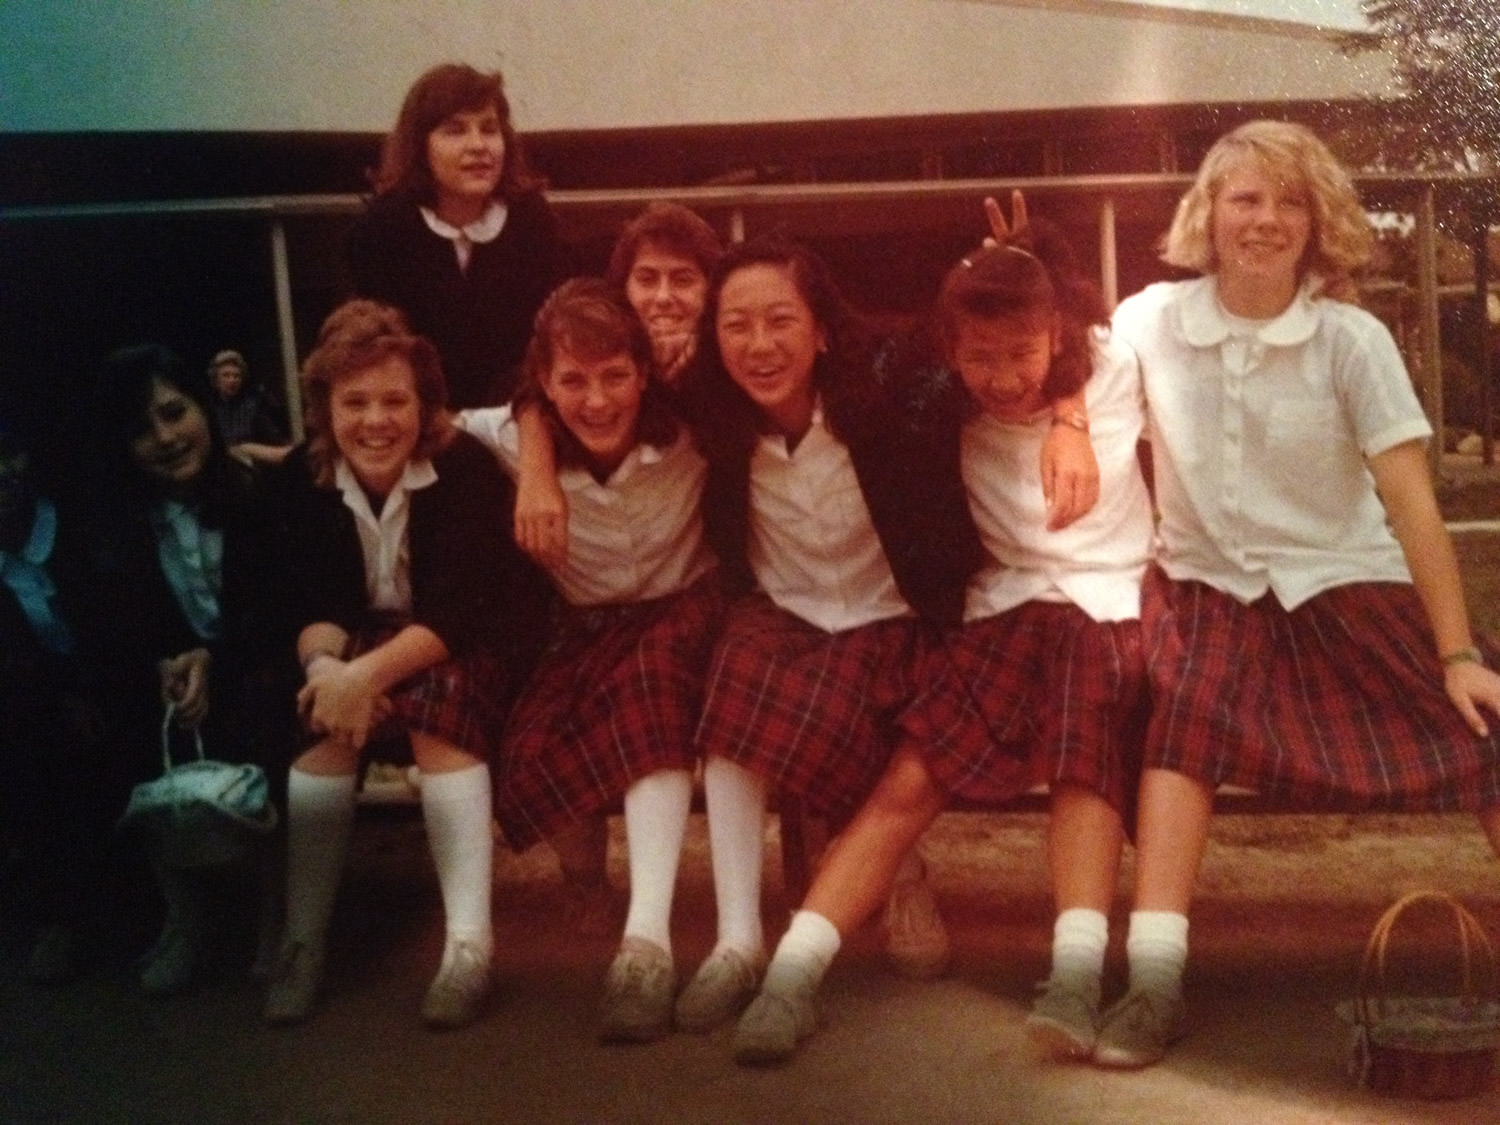 Catholic school girls in the 1980's.